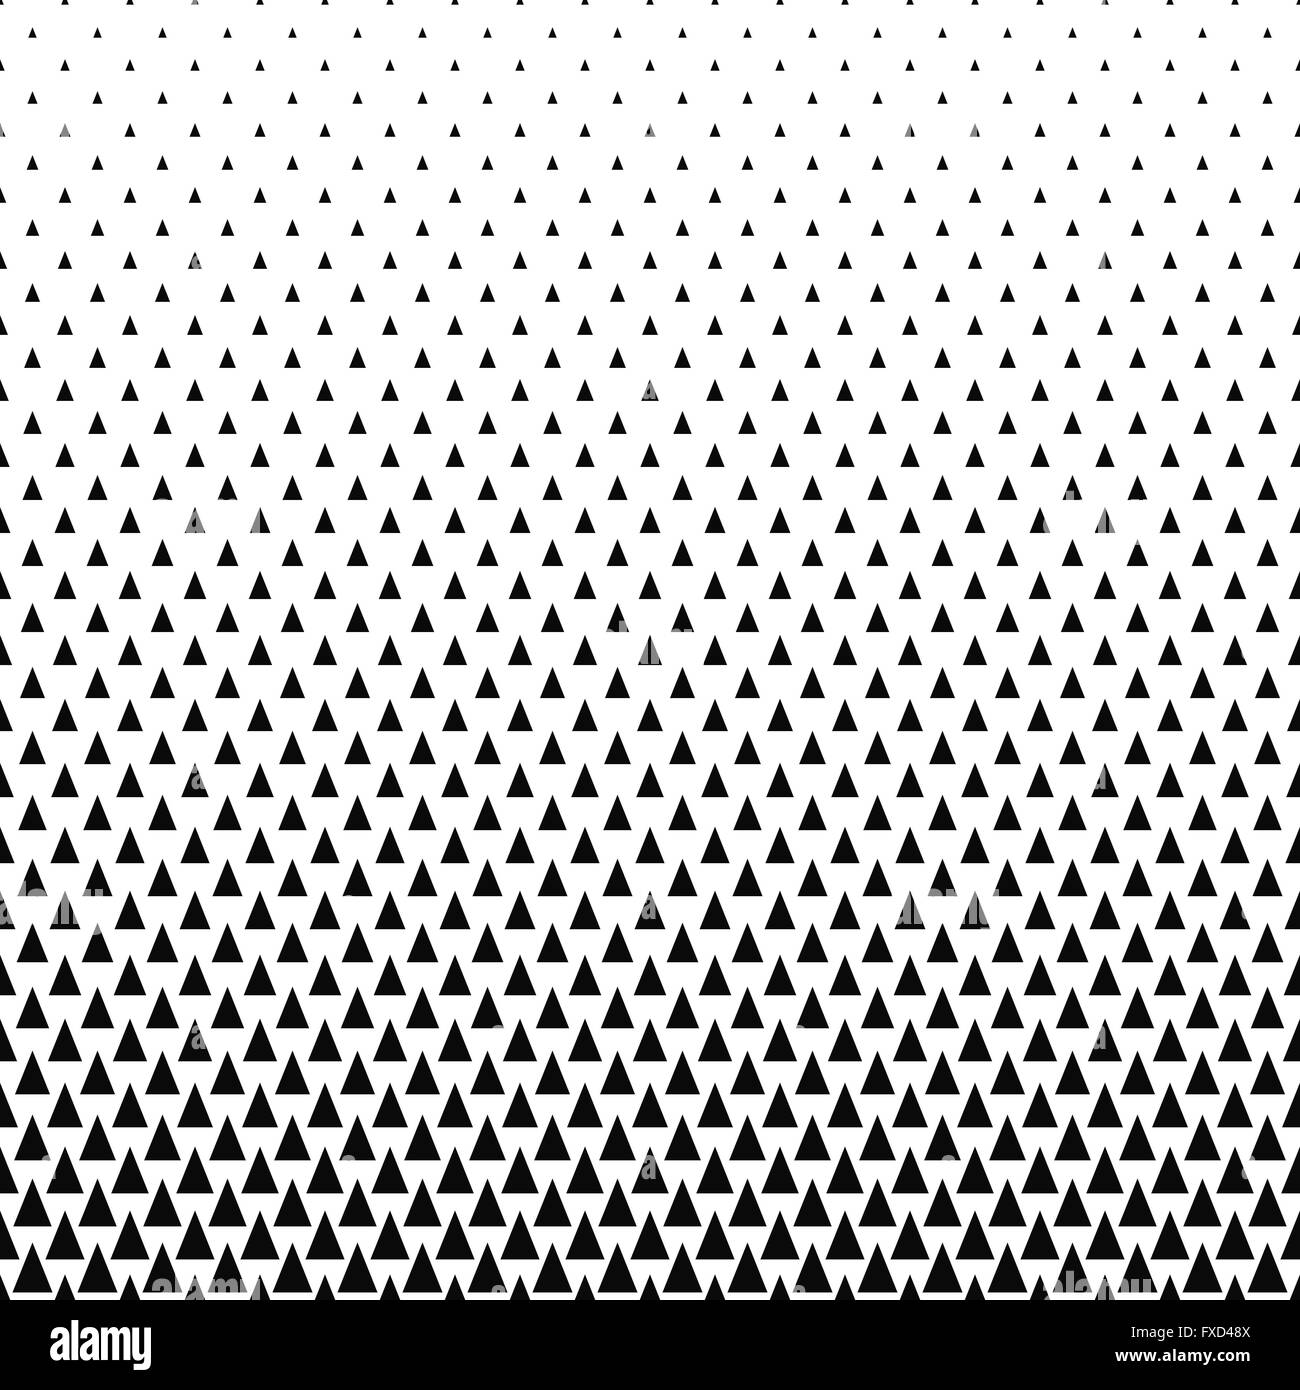 repeating black and white vector triangle pattern stock vector art